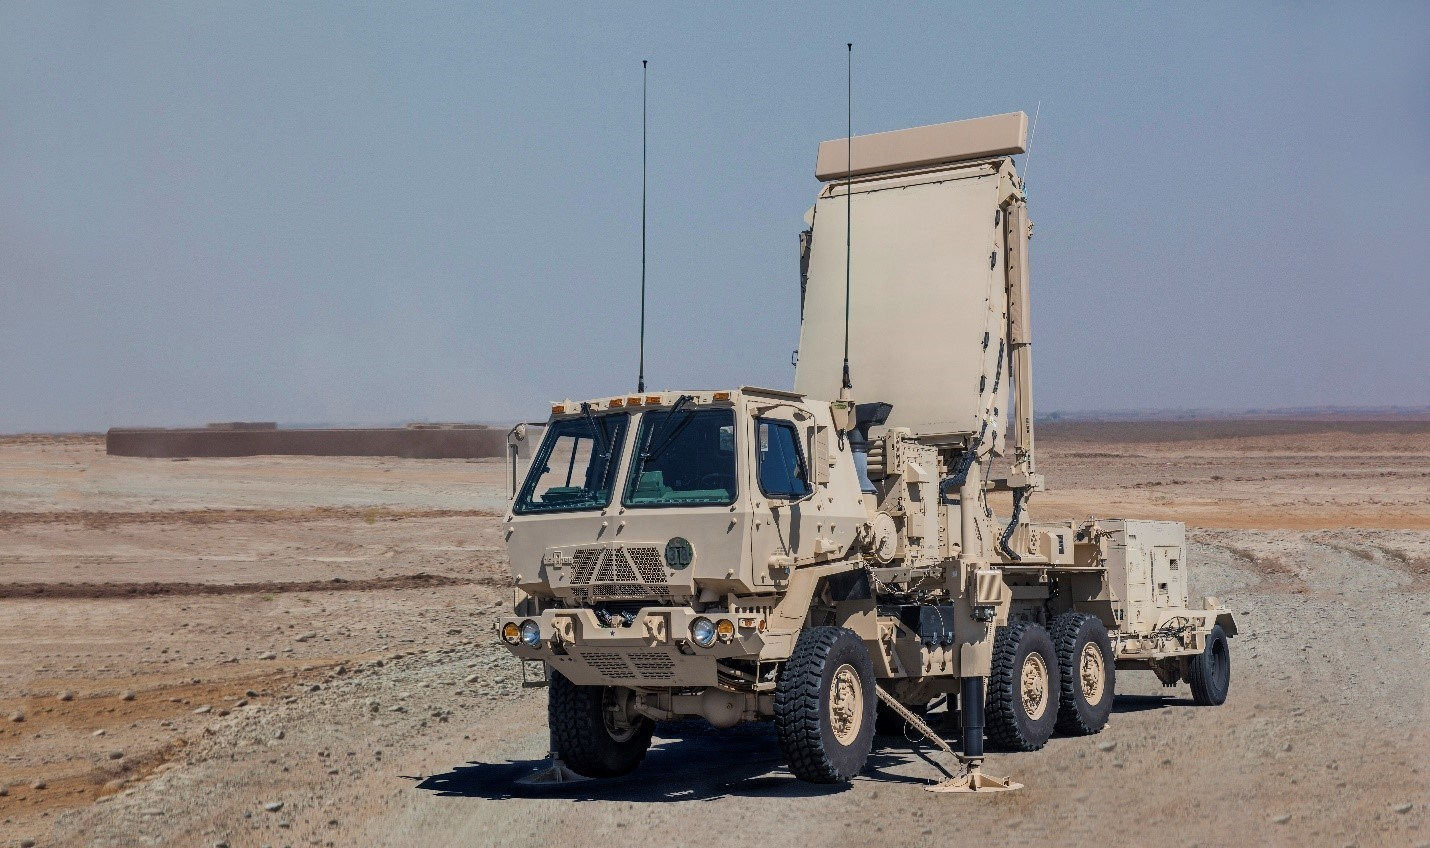 First Q-53 Radar Equipped With Gallium Nitride Delivered To U.S. Army